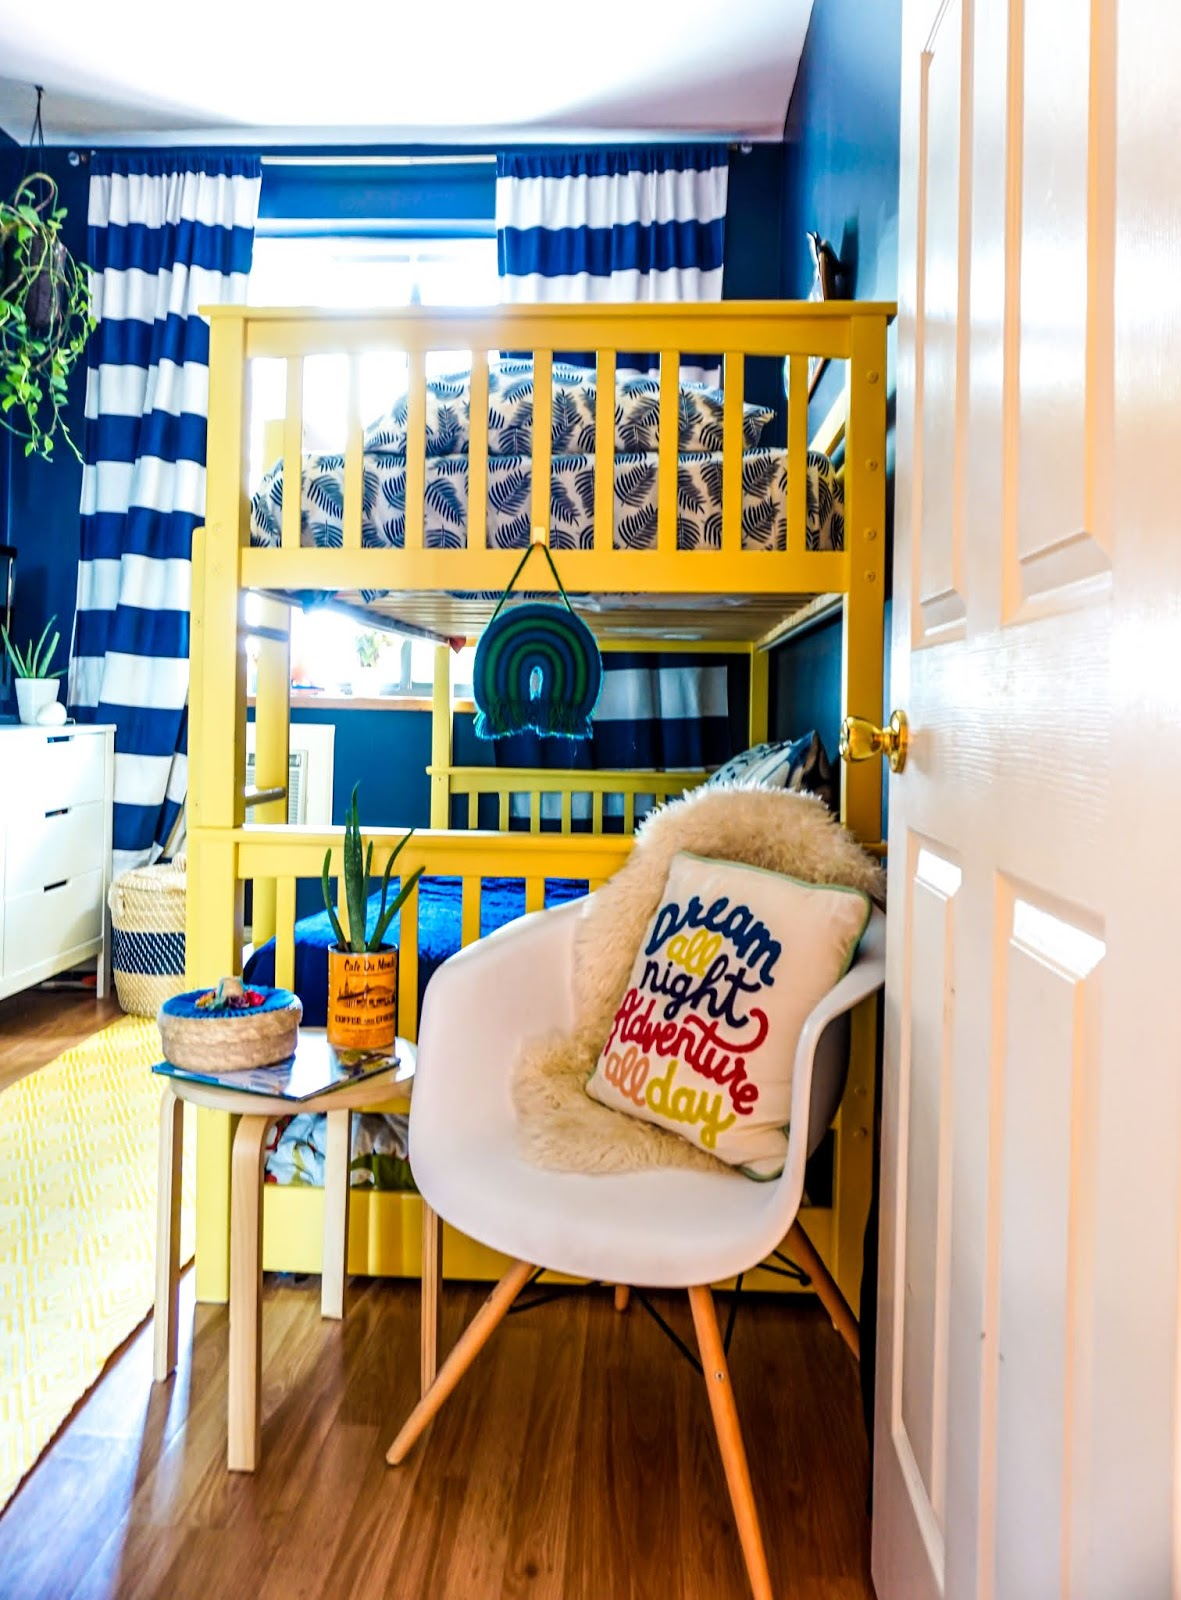 colorful kids bedroom ideas // colorful kids room // colorful boys room // colorful bohemian kids bedroom // Clare paint golden hour // clare paint goodnight moon // best paint for kids bedroom // non-voc paint clare // boho kids room // tropical inspired kids bedroom // tropical inspired boys room // Hawaii inspired boys room // bohemian kids room decor // colorful kids room inspo // yellow bunk bed // navy blue walls bedroom // boho kids bedroom //  colorful boho kids room inspo // navy striped curtains // colorful bunk beds